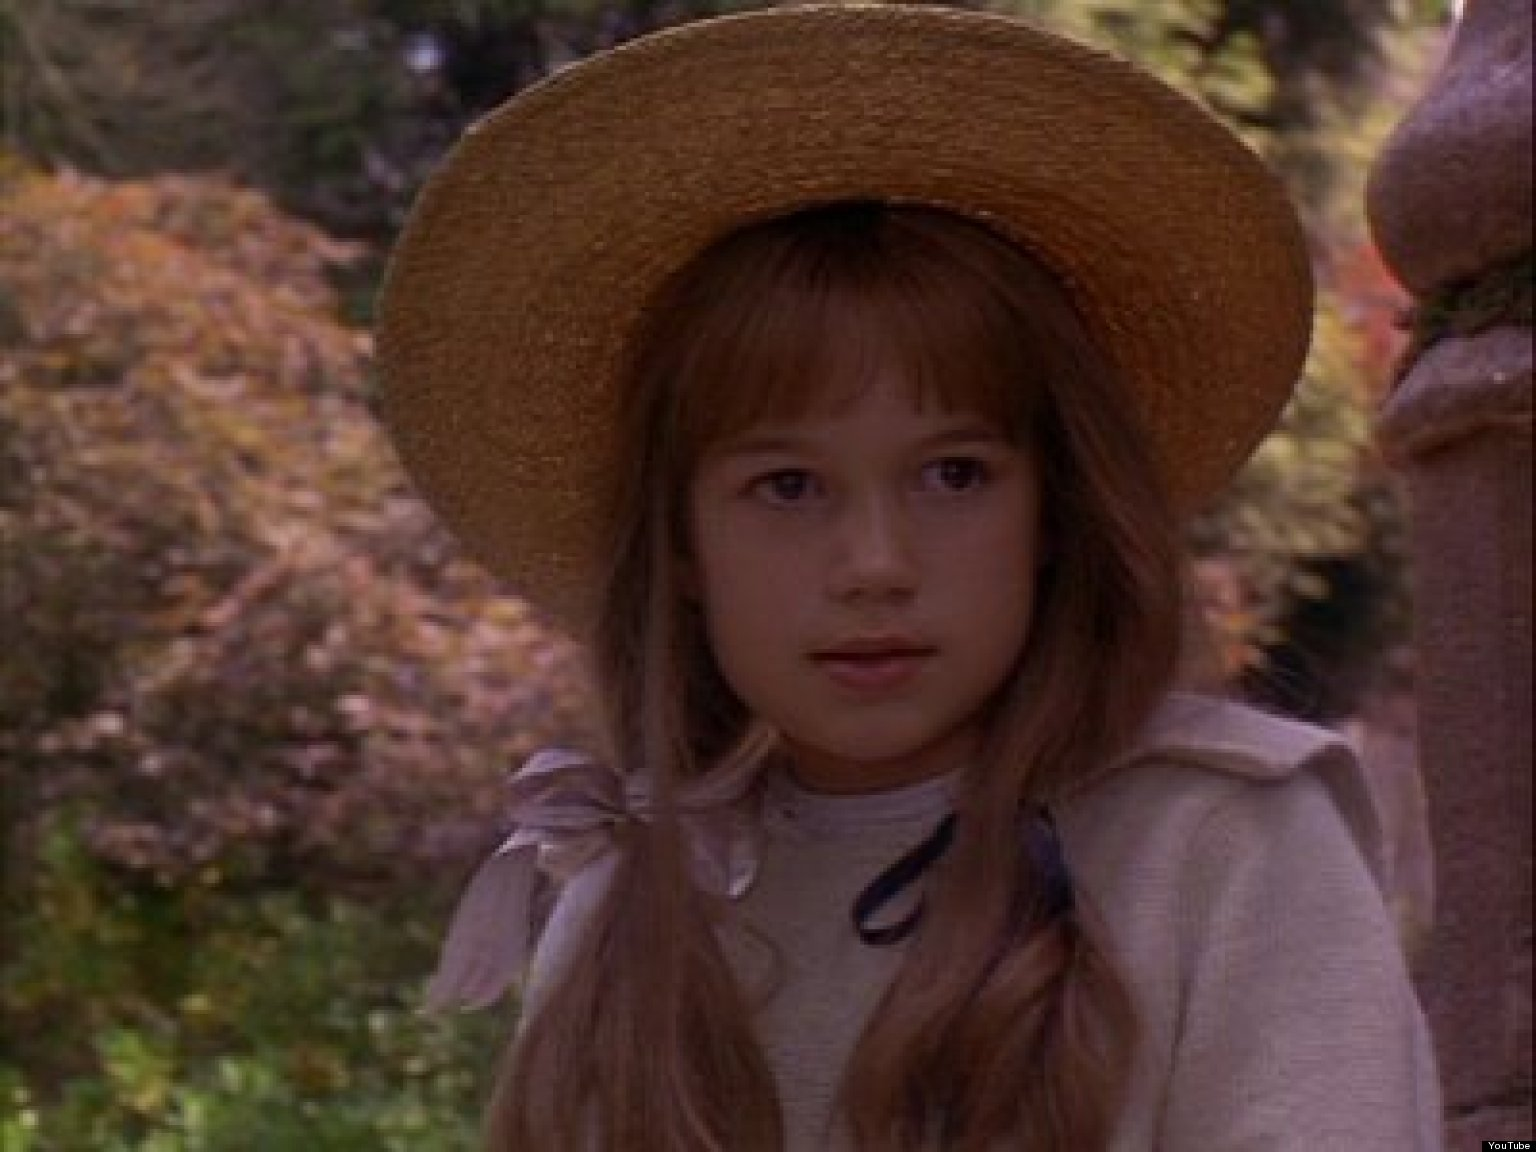 39 The Secret Garden 39 Actress Kate Maberly Where Is She